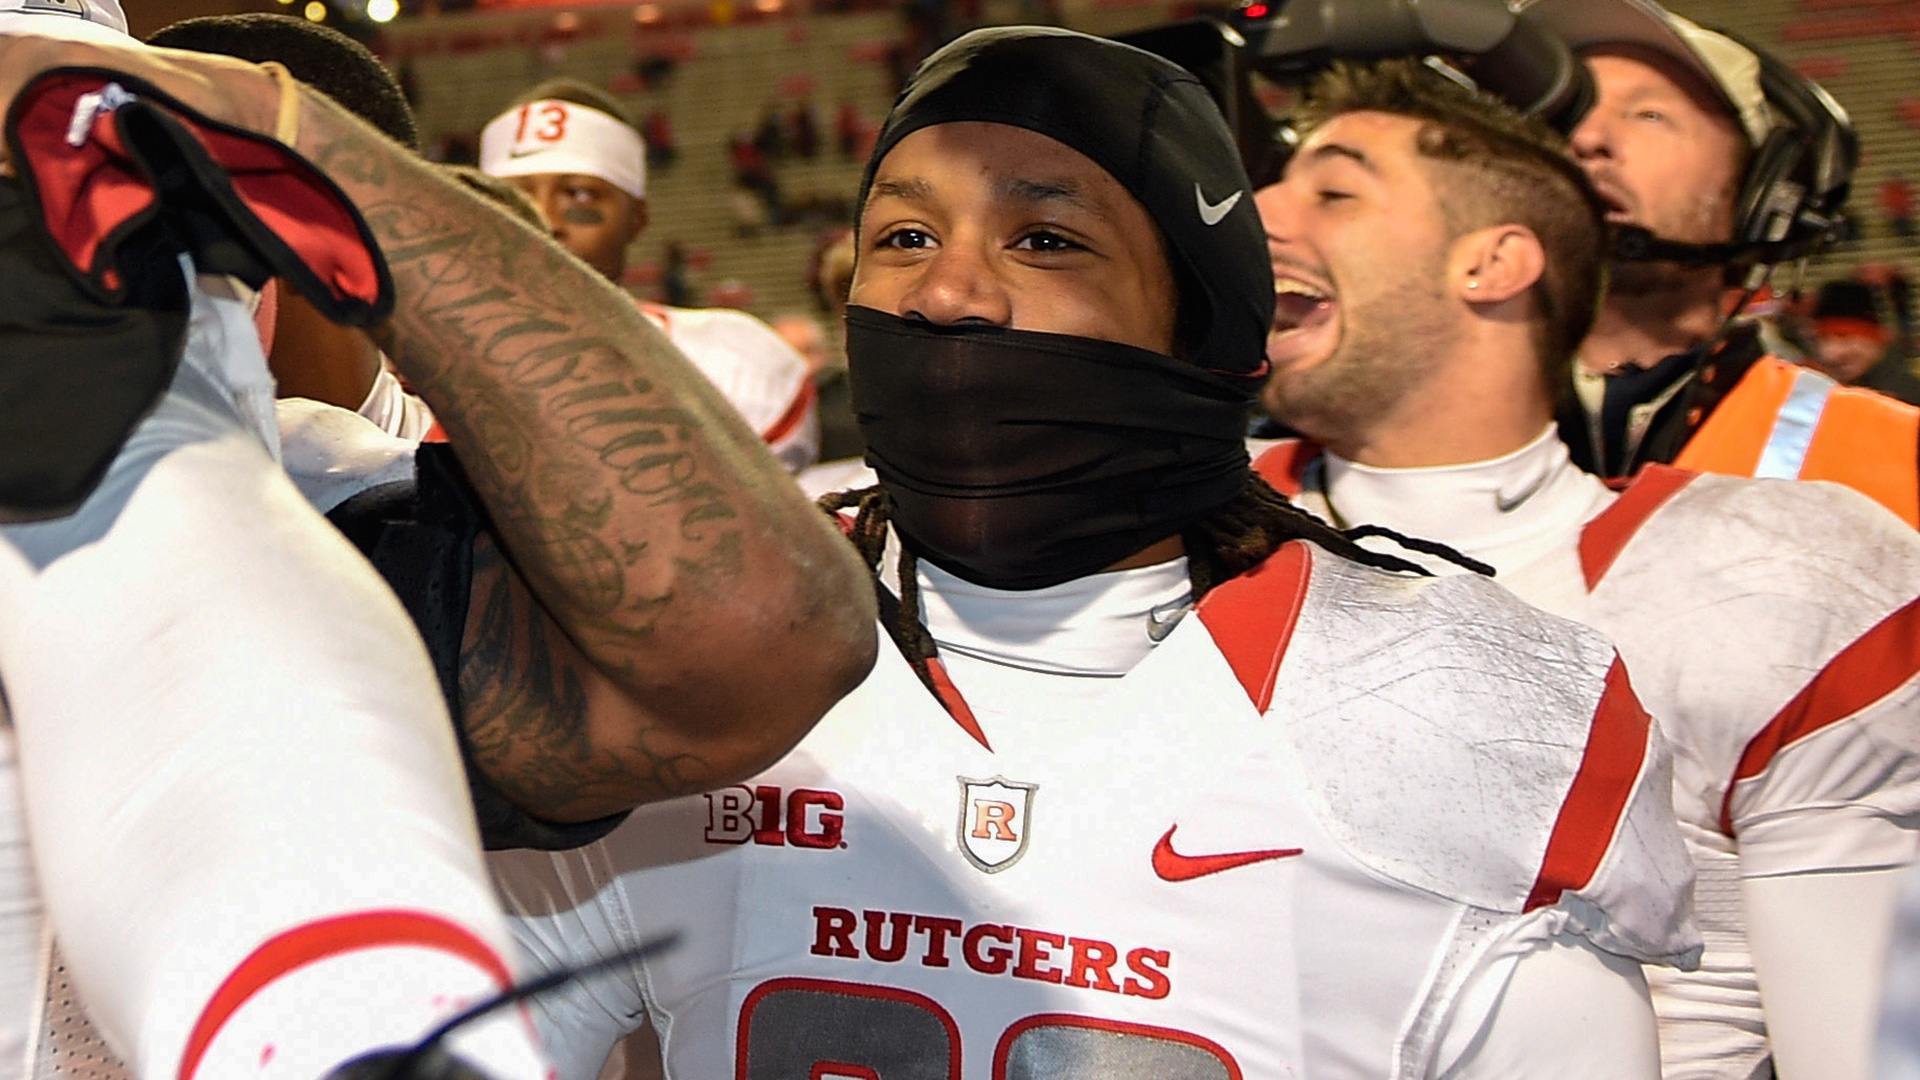 Rutgers CB arrested, charged with armed robbery in theft of $20